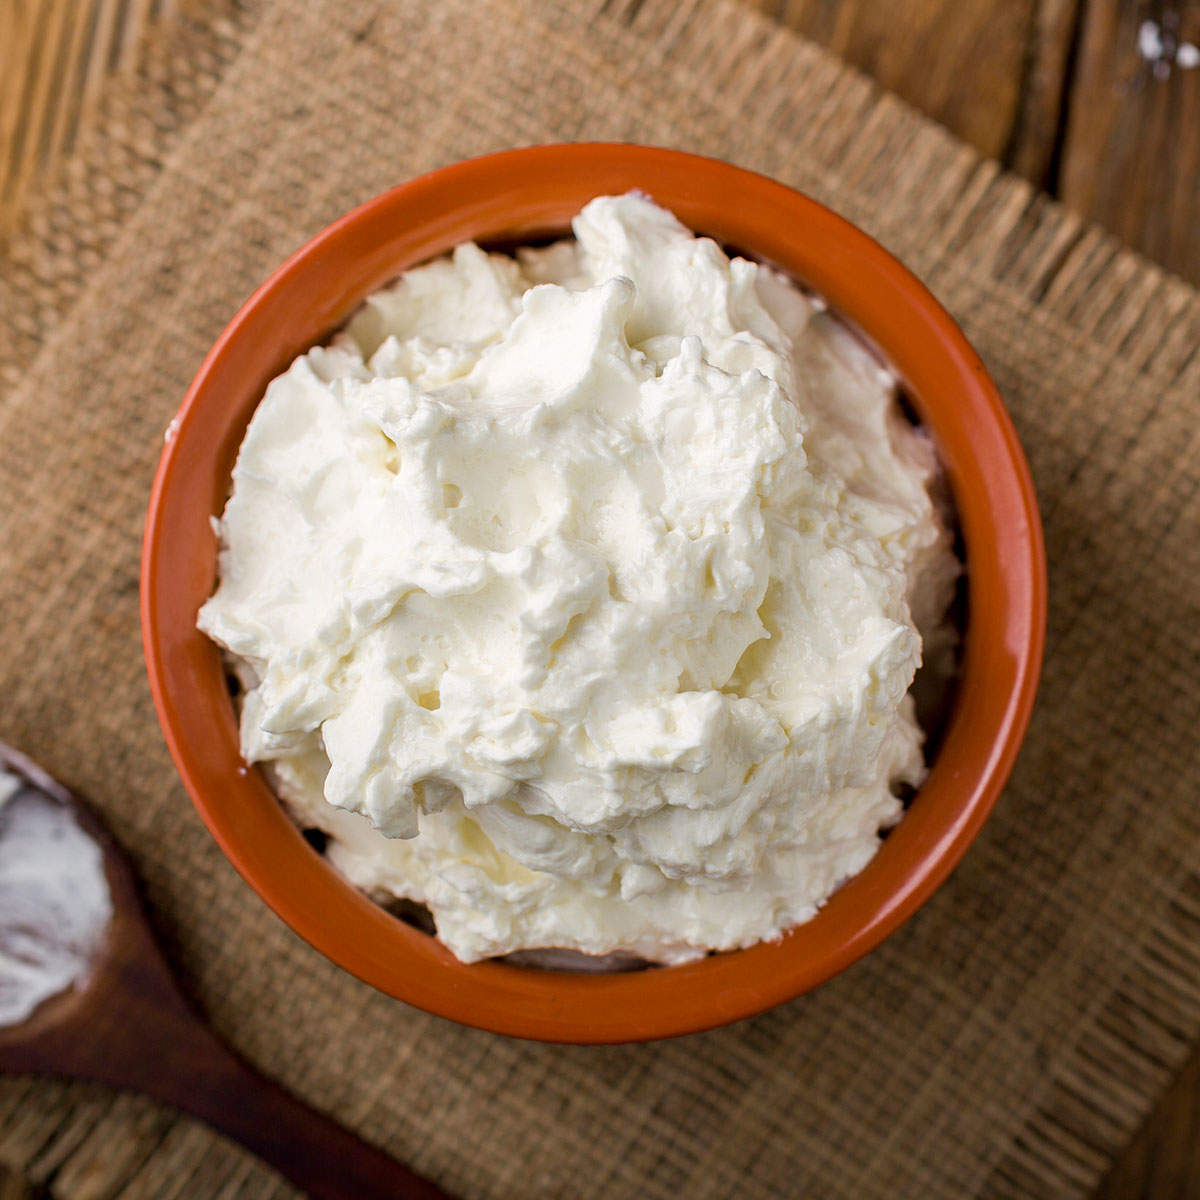 Homemade White Butter Recipes: How to Make White Butter at Home